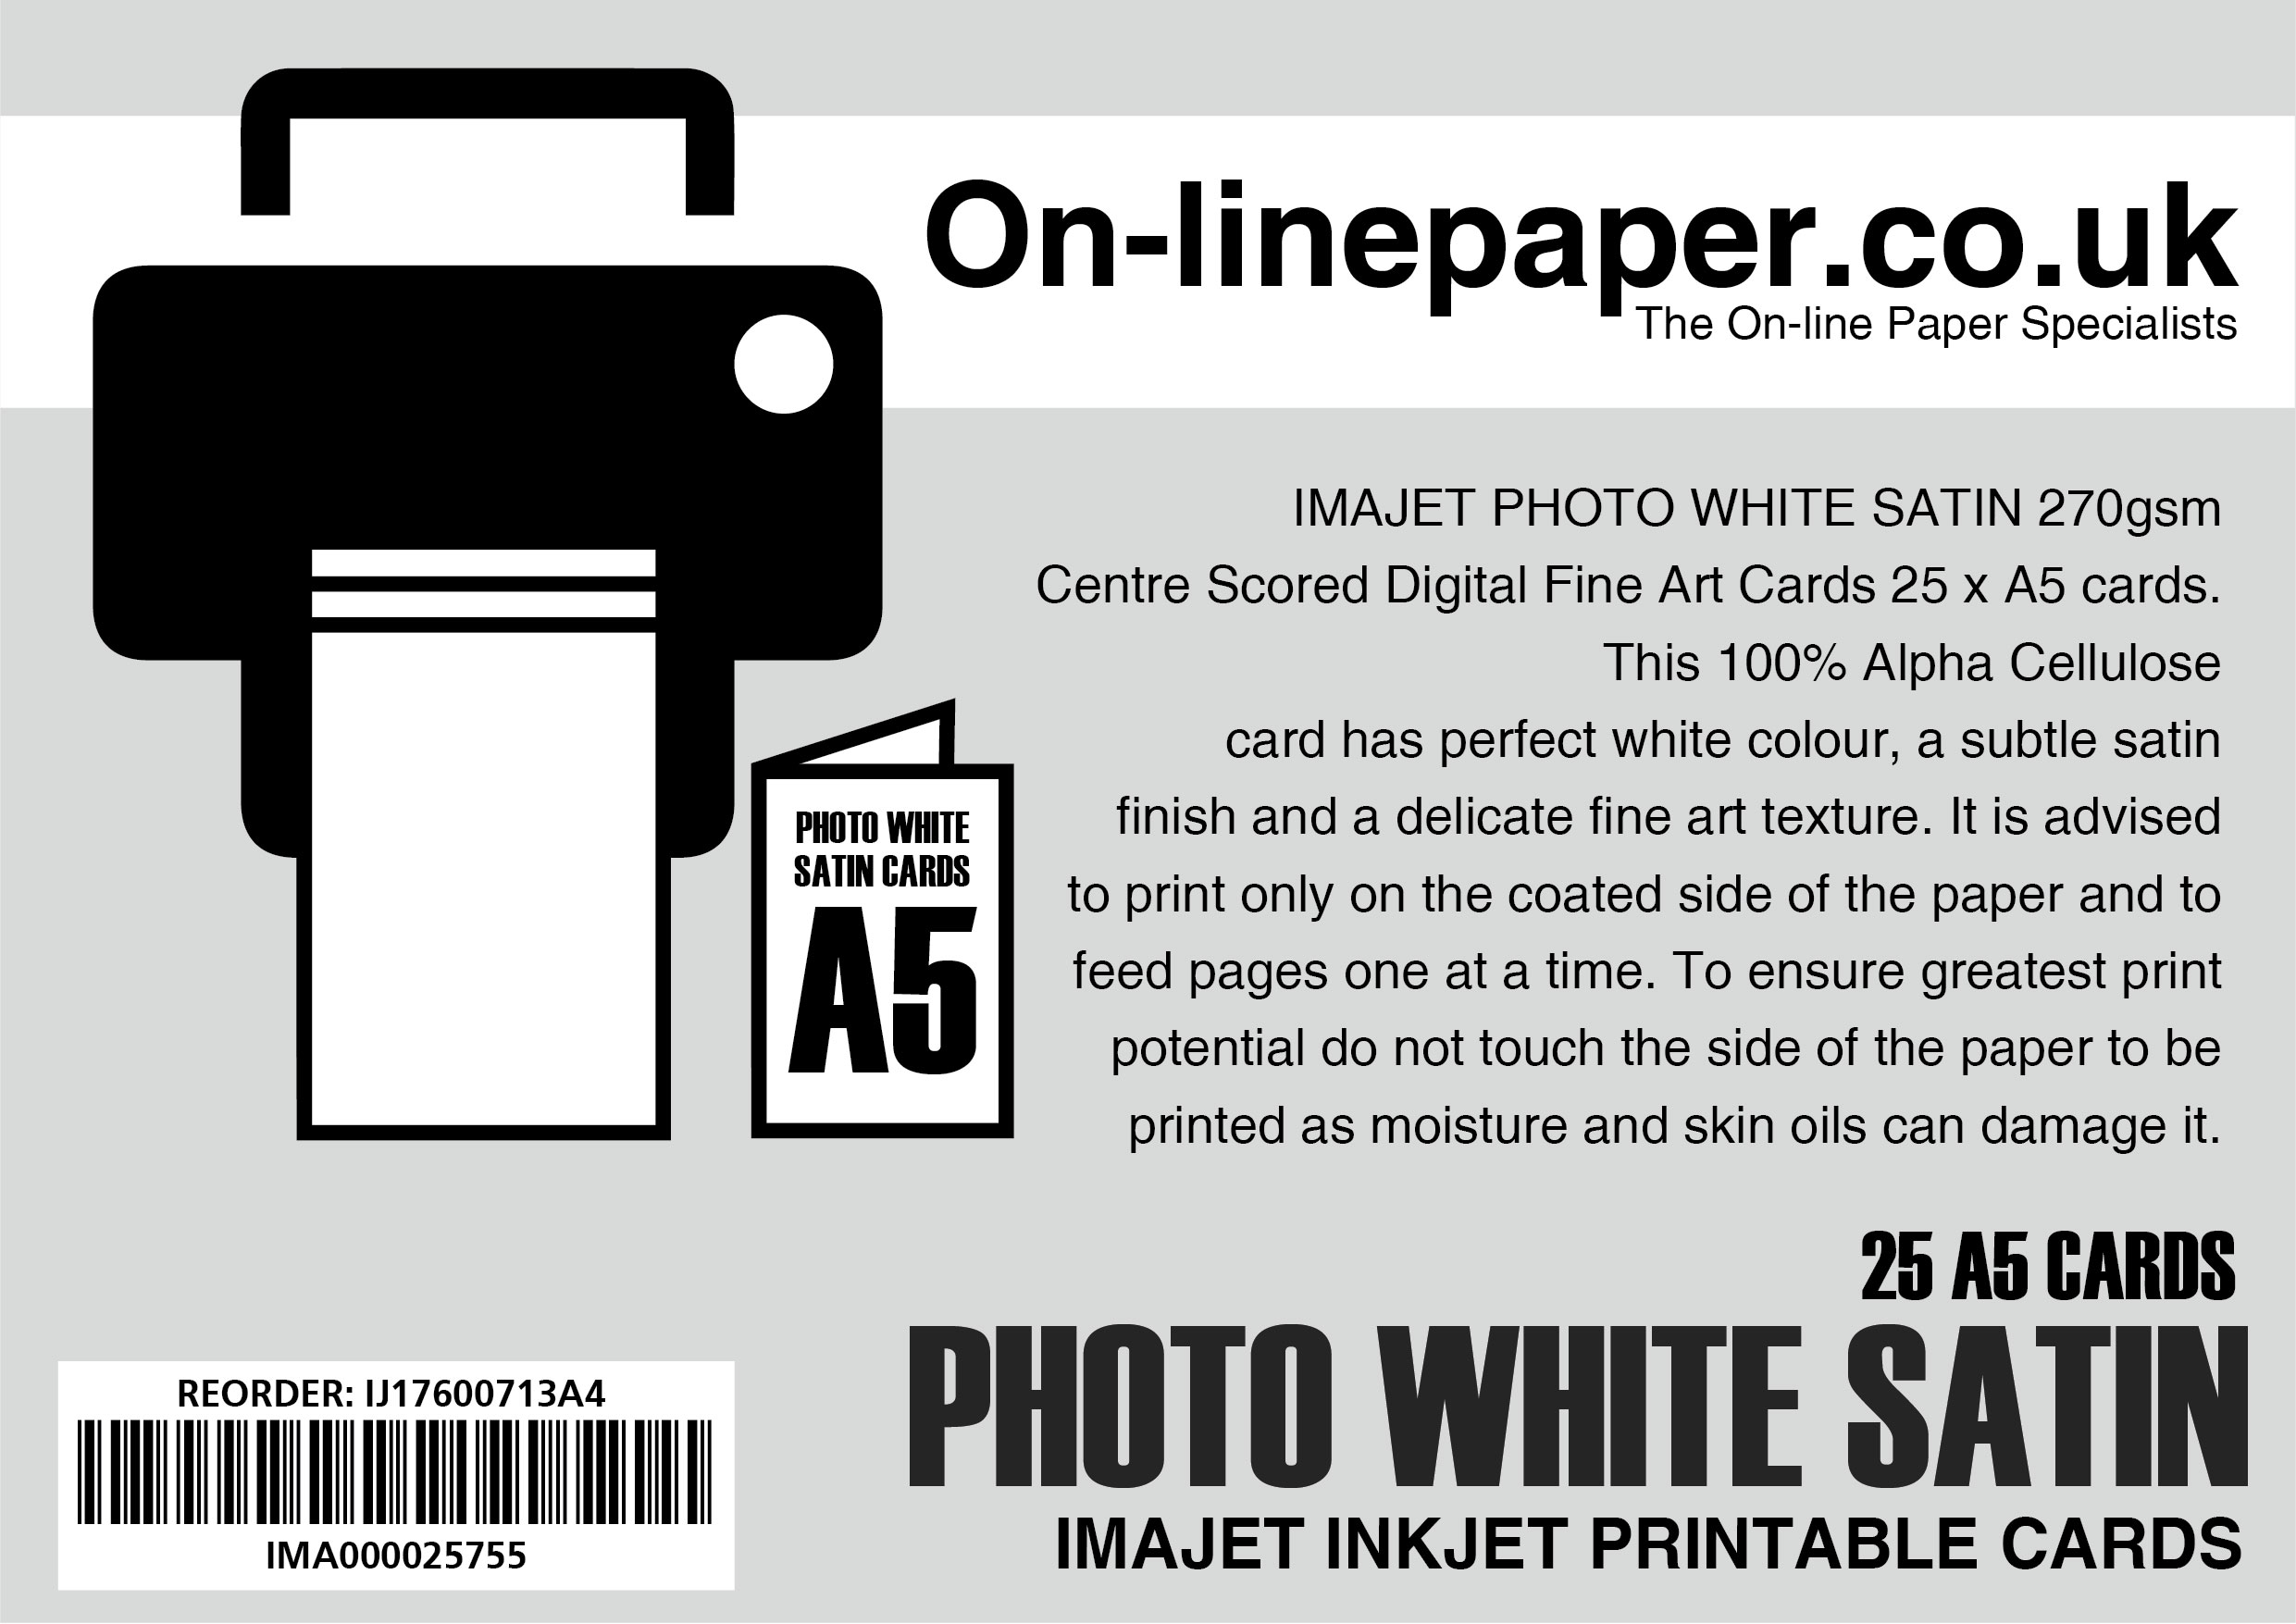 IMAJET PHOTO WHITE SATIN 270gsm Centre Scored Digital Fine Art Cards 25 x A4 cards -->A5